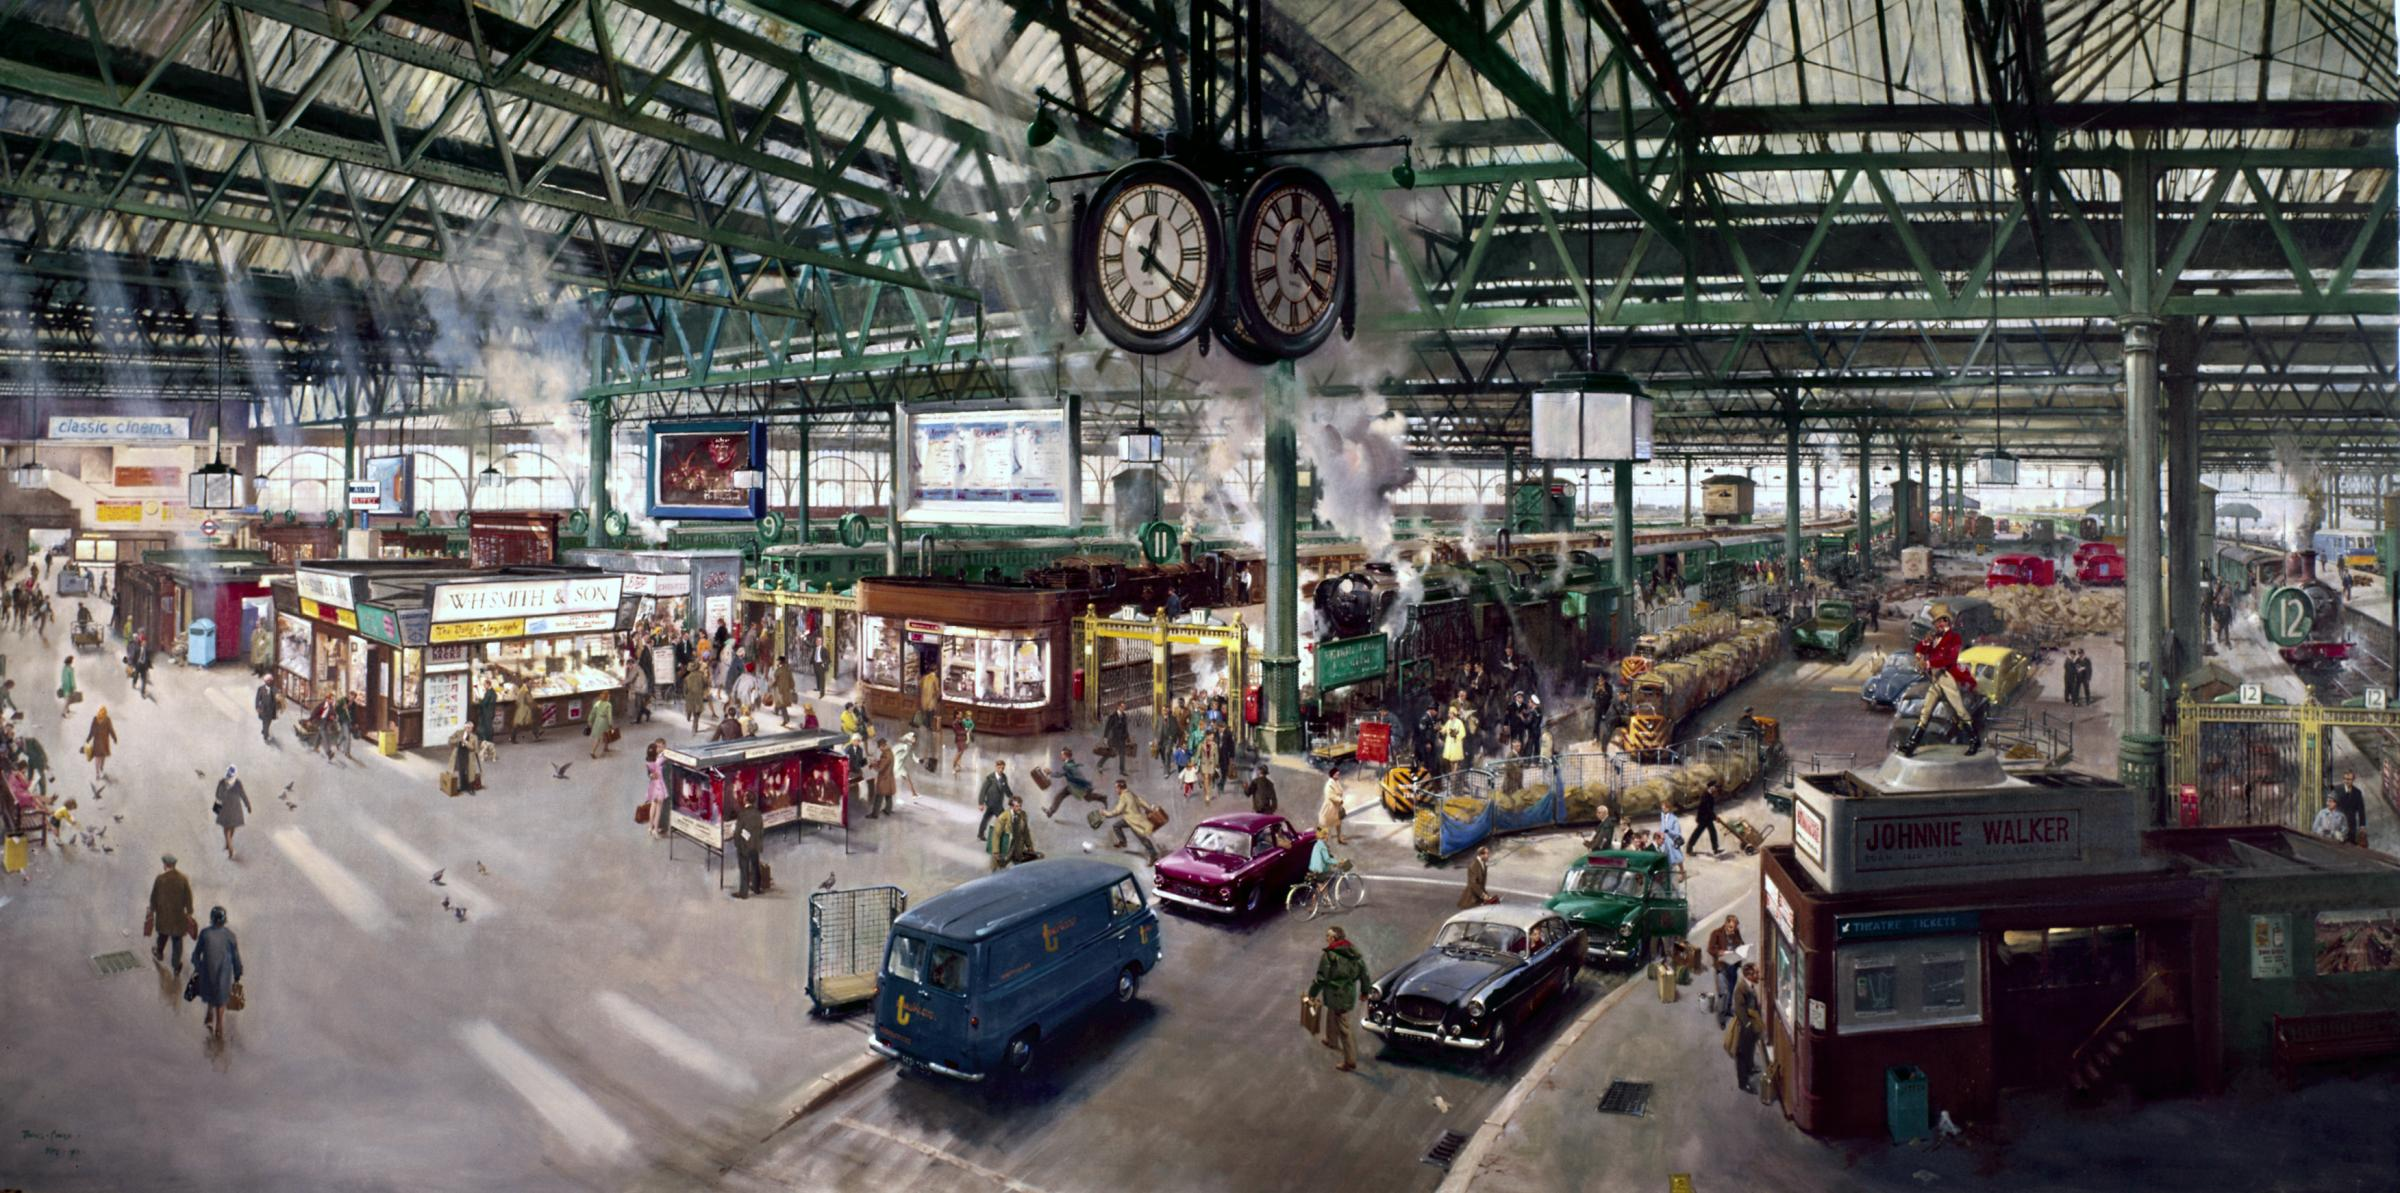 Waterloo Station: Painted by Terence Cuneo in 1967